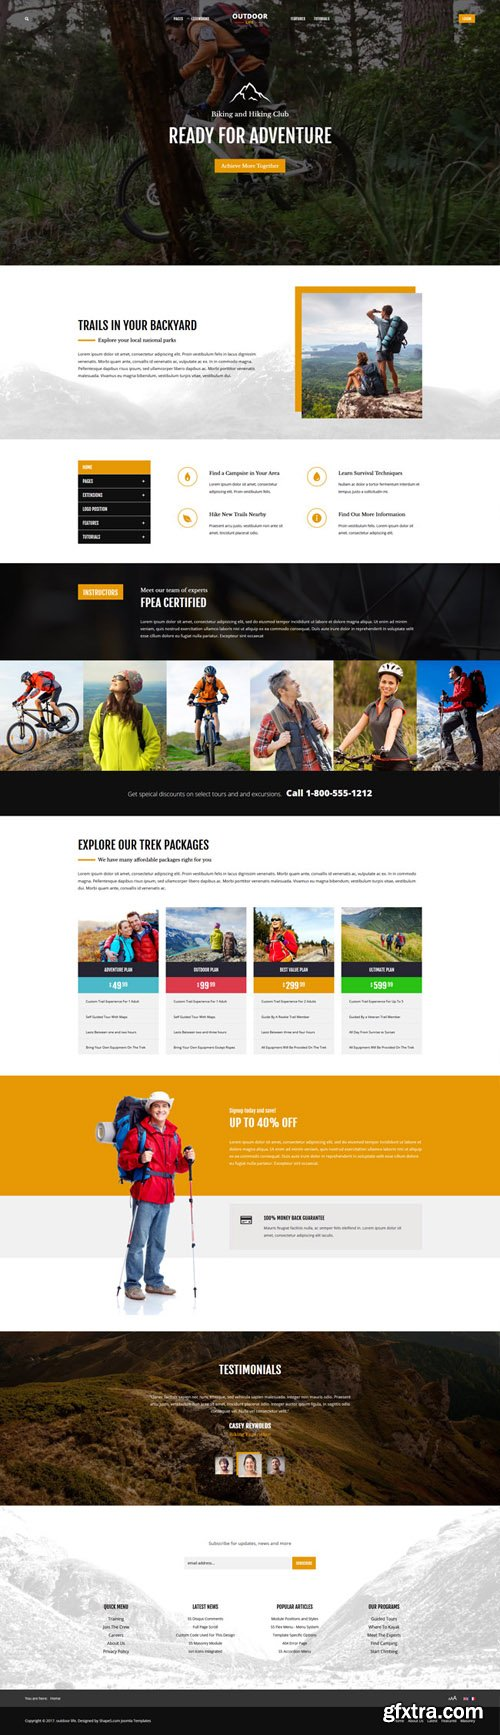 Shape5 - Outdoor Life v1.0.2 - Joomla Template